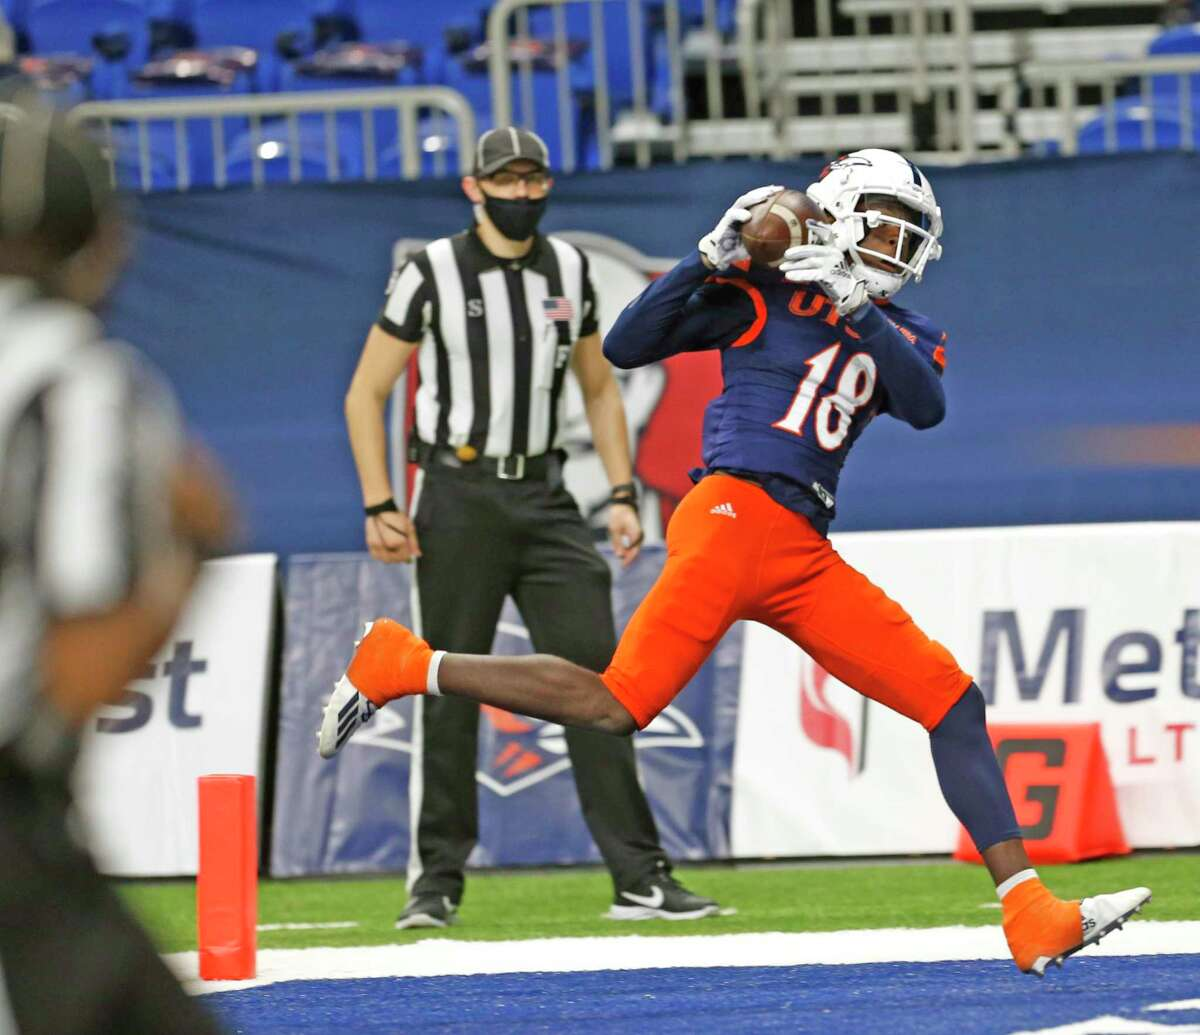 UTSA receiver Zakhari Franklin scores on a touchdown reception in second quarter against UTEP at on Saturday, Nov.14, 2020 at the Alamodome.